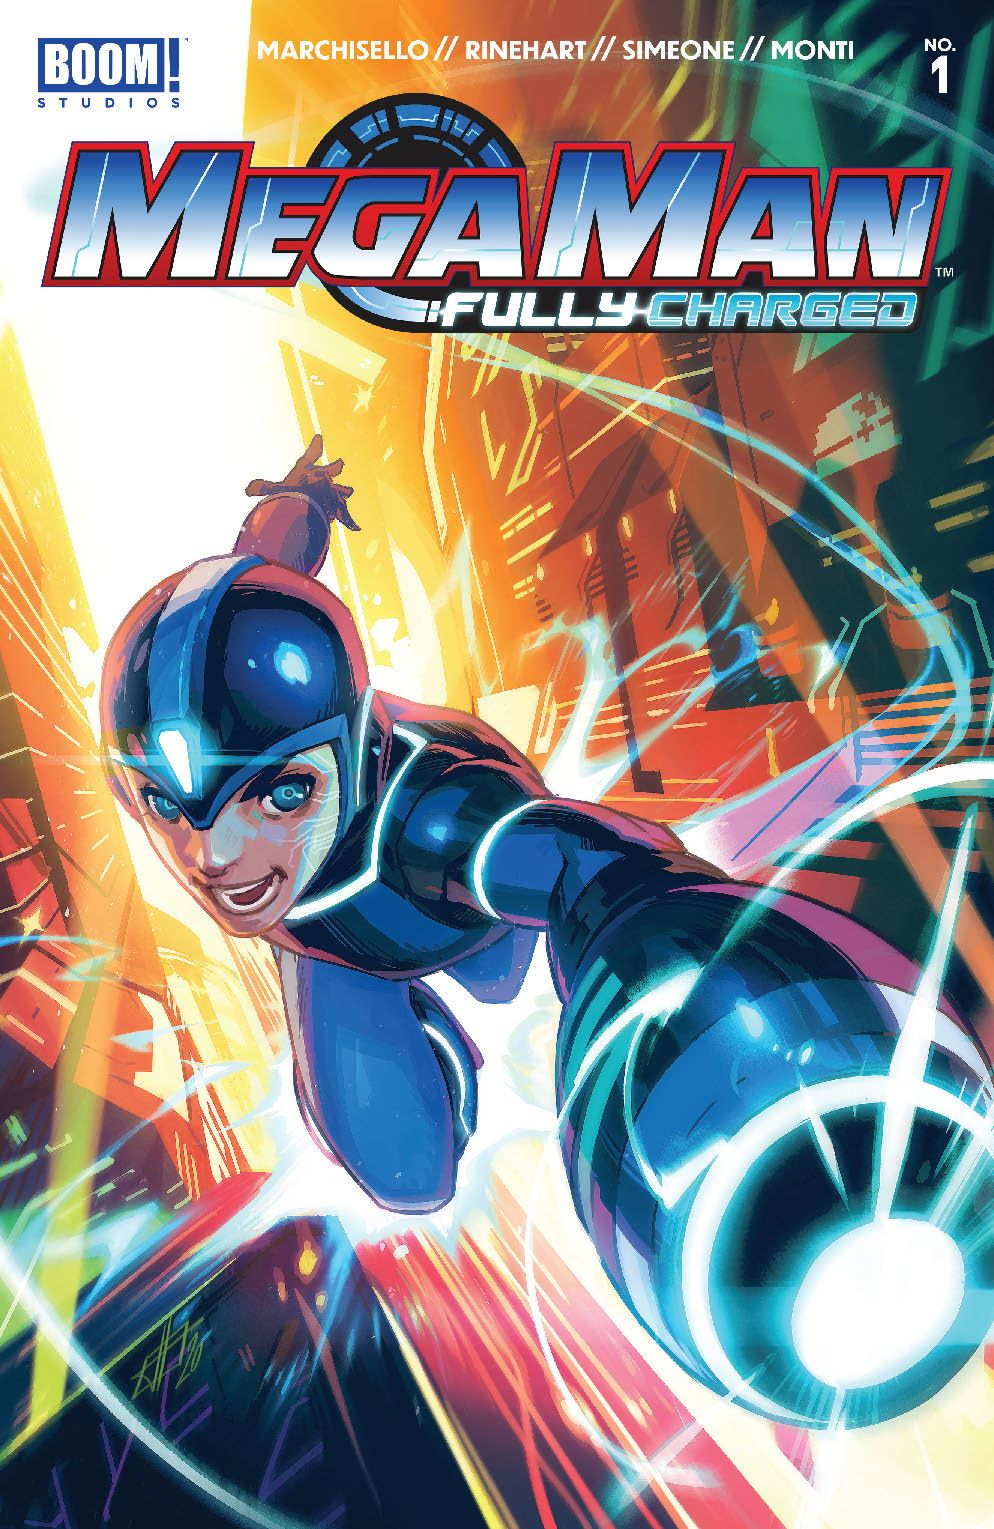 MegaMan_FullyCharged_001_Cover_Main ComicList: BOOM! Studios New Releases for 08/26/2020